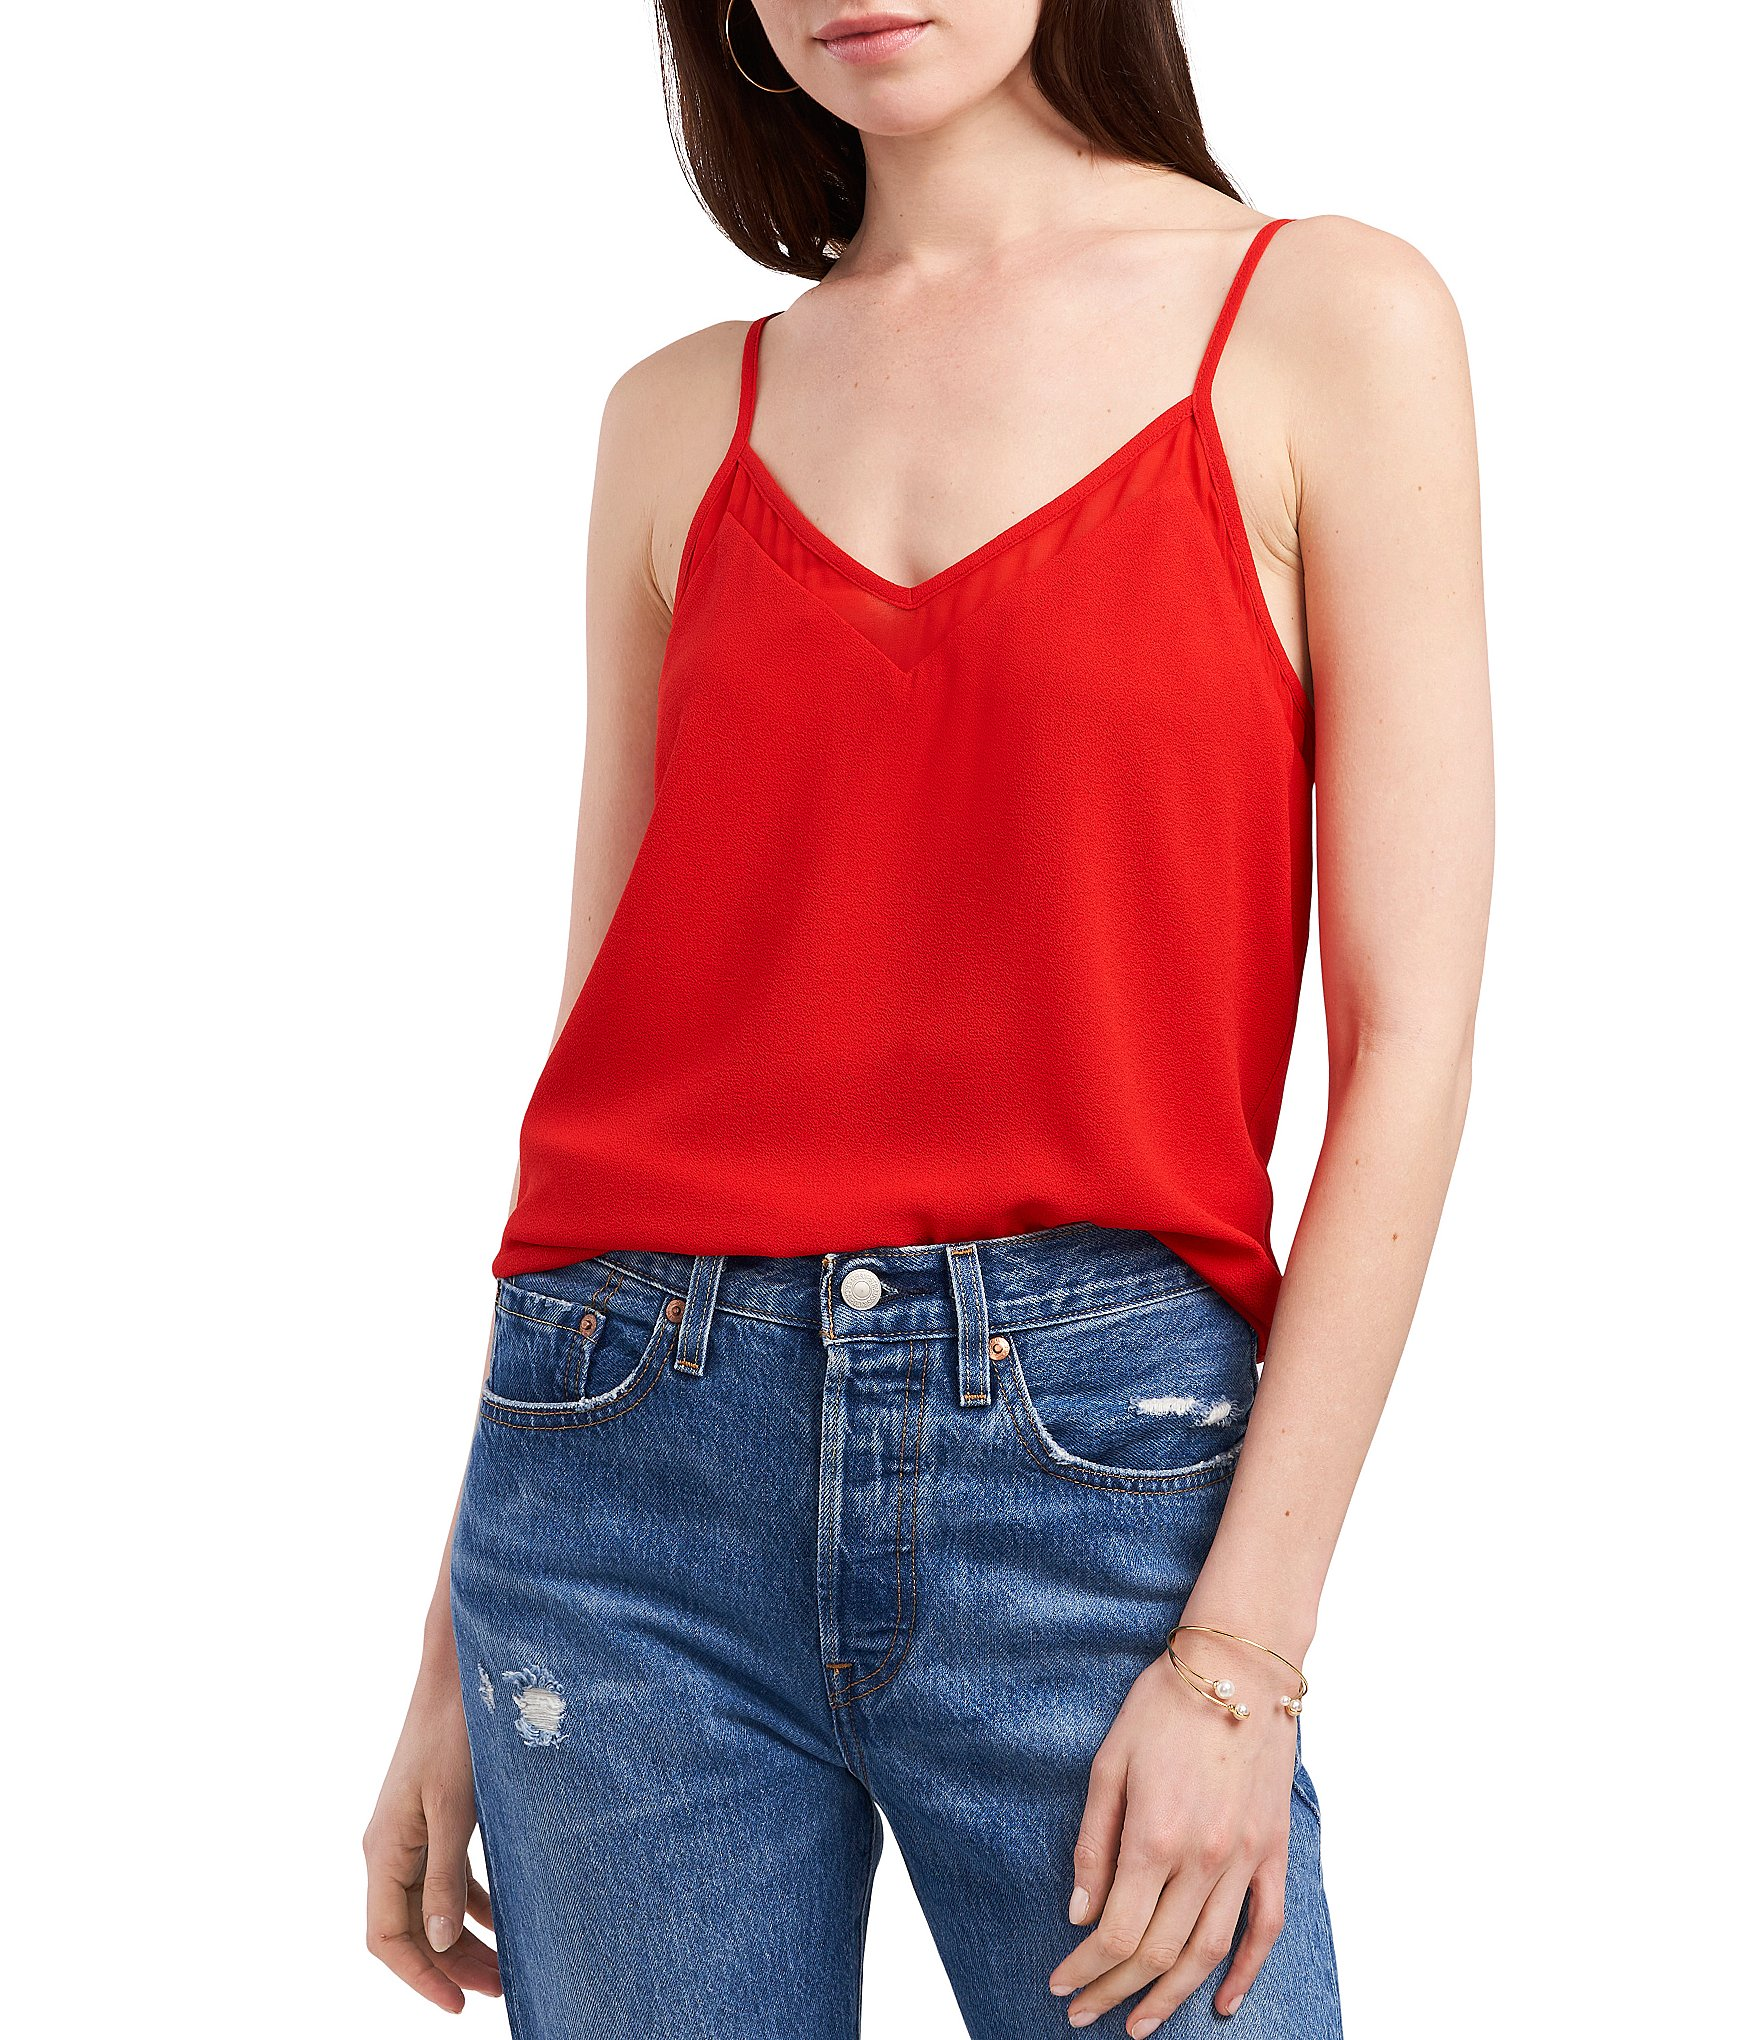 1 STATE NEW Women/'s Mineral Red Wrap Front Camisole Tank Shirt Top S TEDO